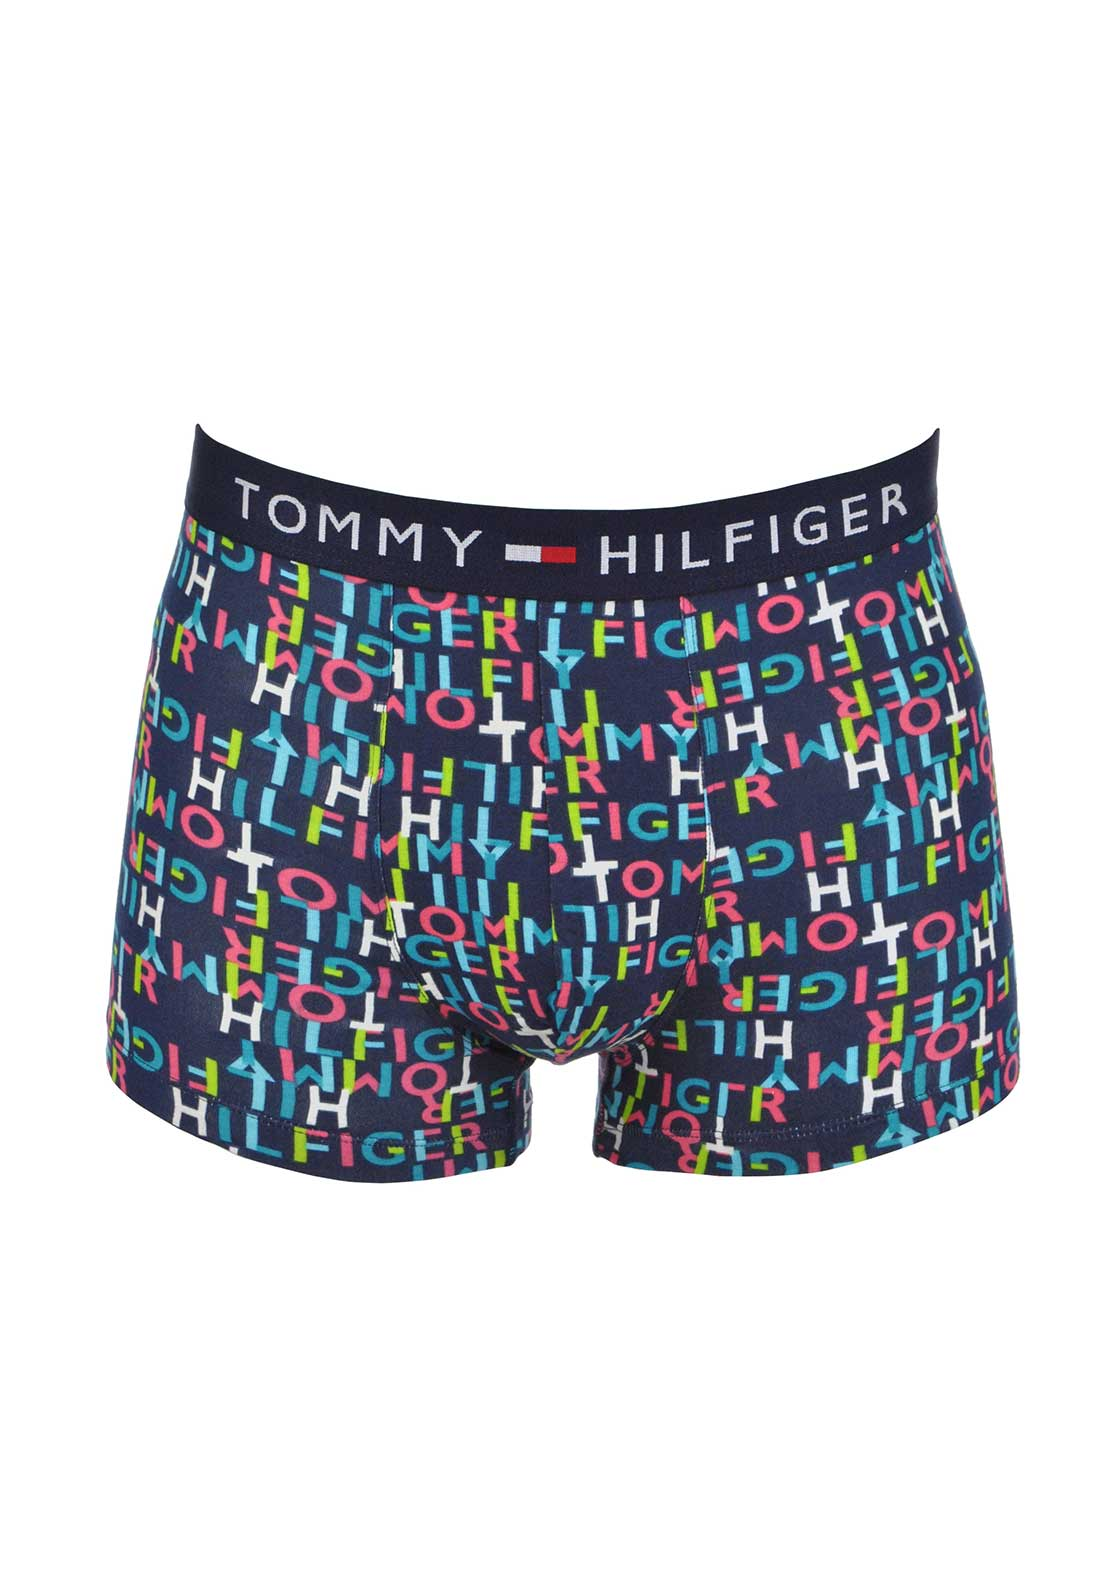 Tommy Hilfiger Mens Keiron Cotton Stretch Printed Boxer Trunks, Multi-Coloured